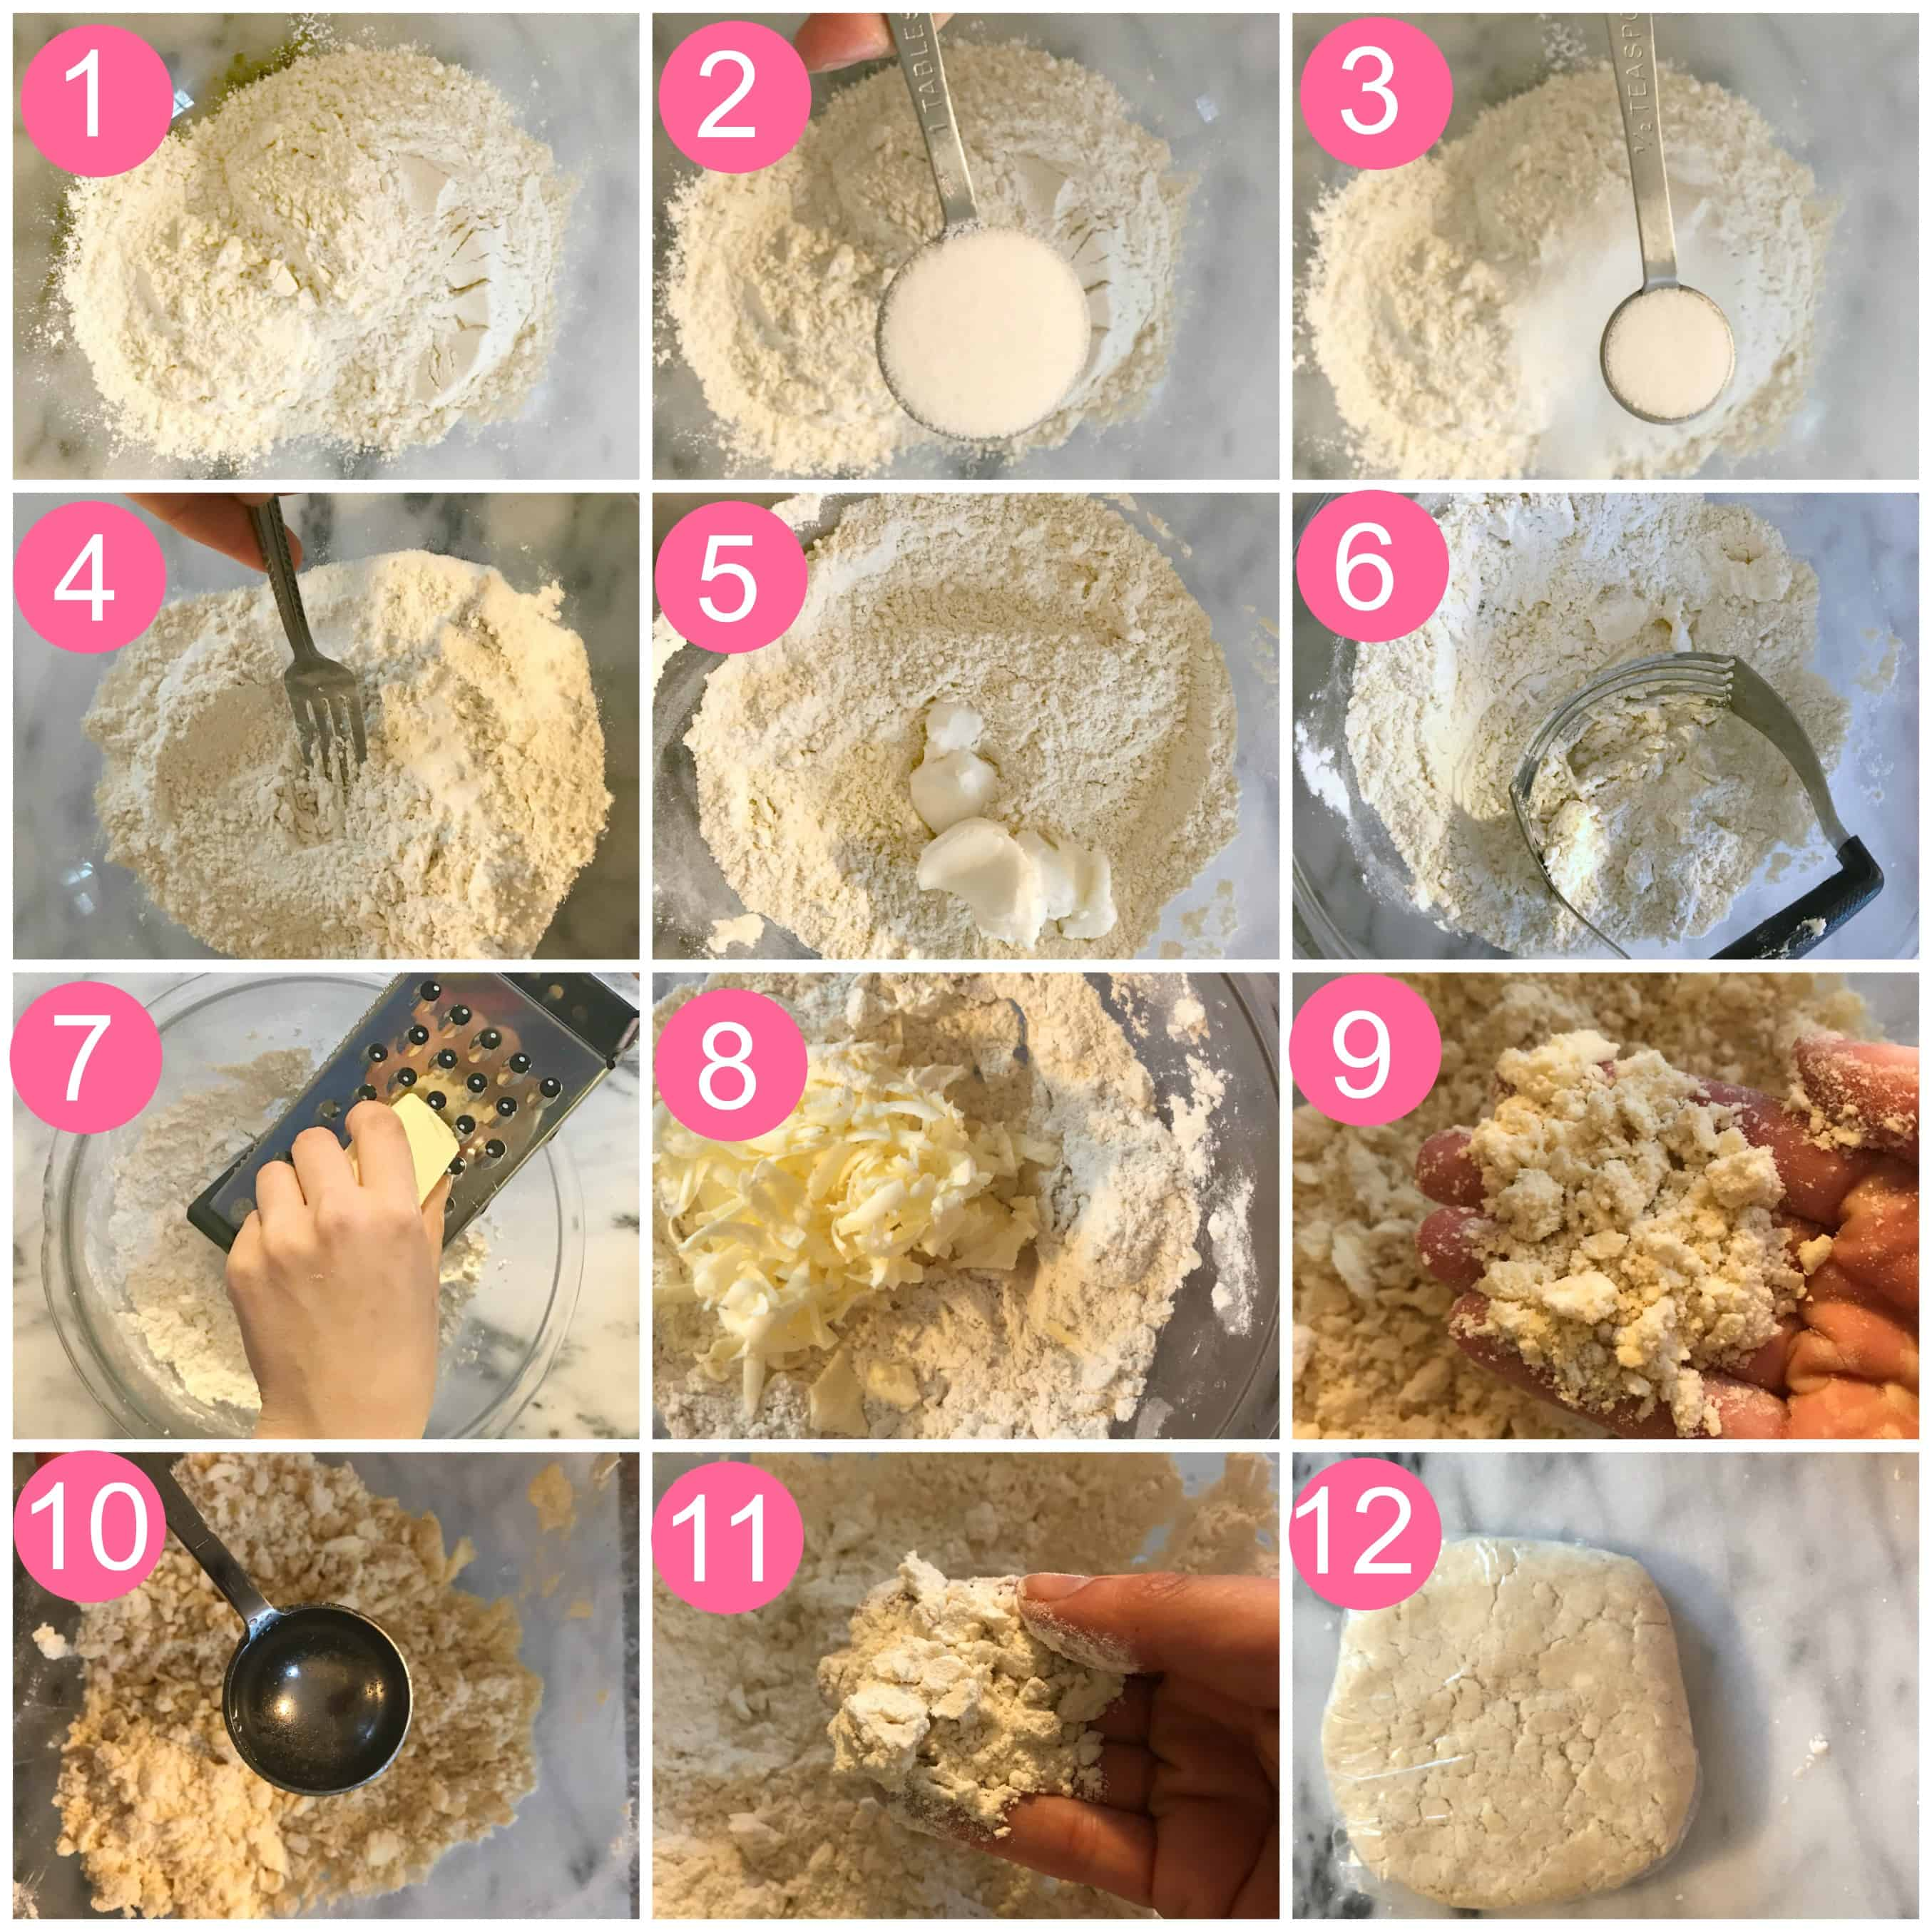 Pie crust collage